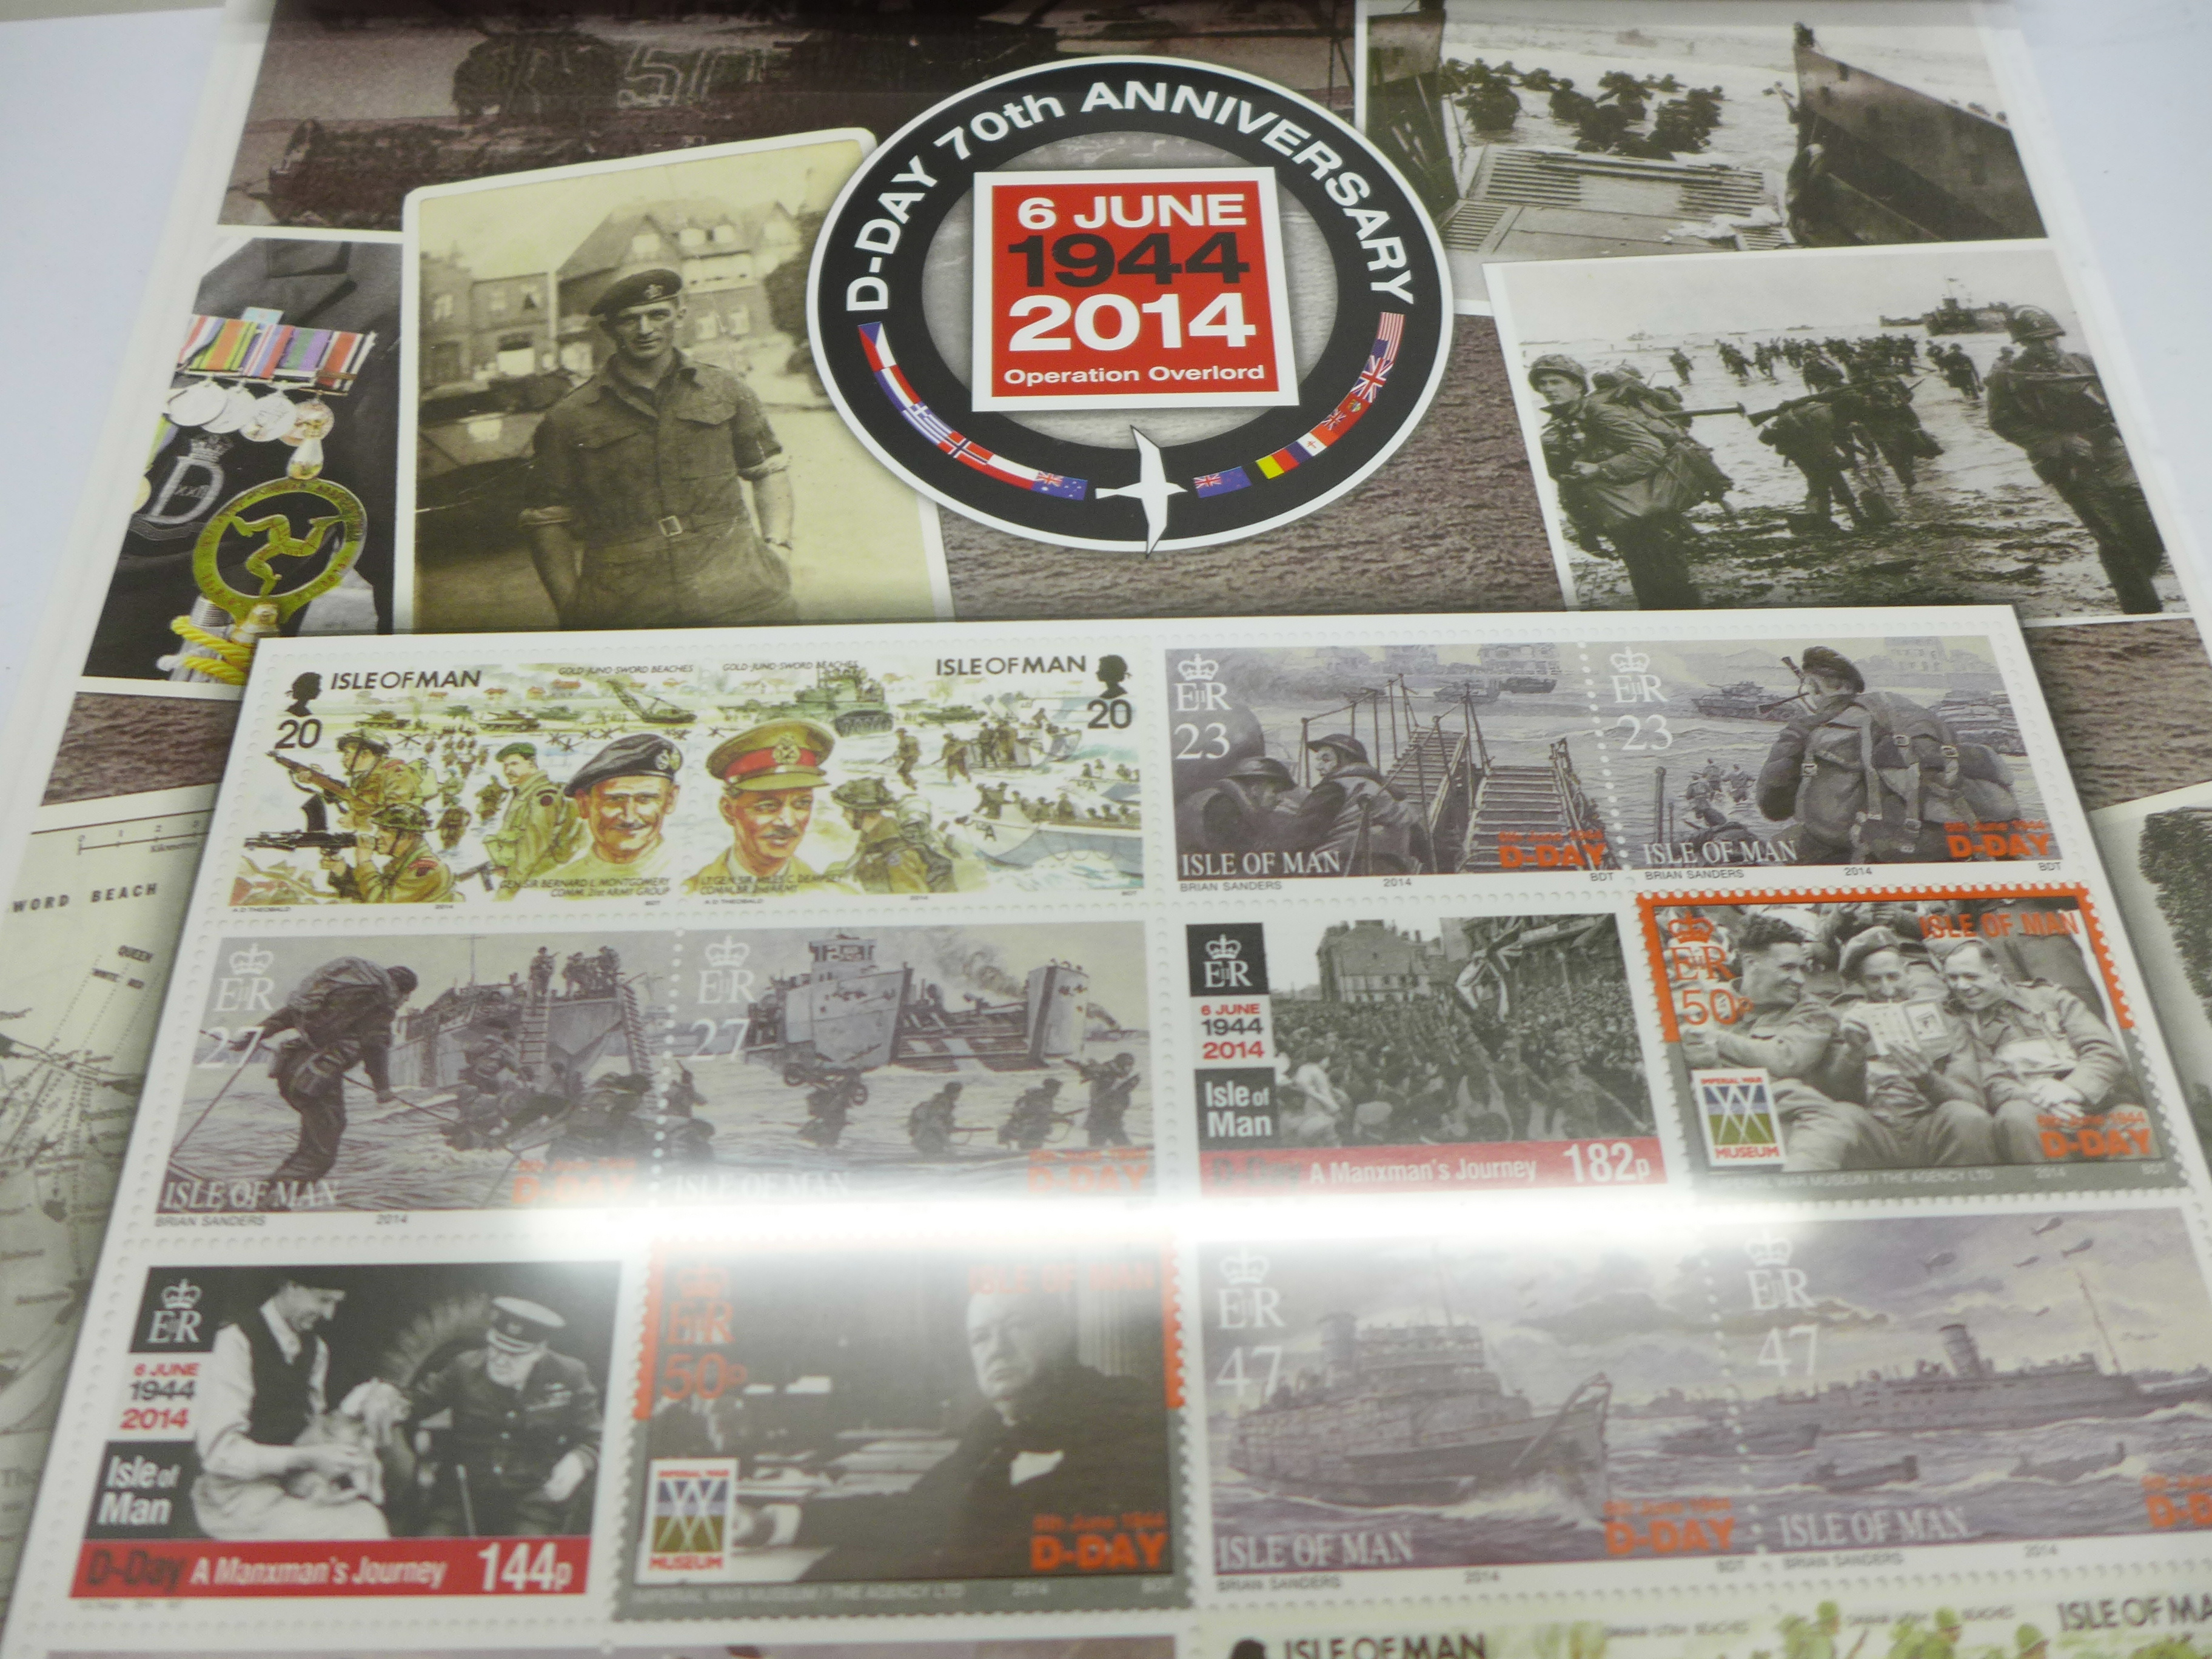 Isle of Man, 2014 D-Day 70th Anniversary 6th June 1944, Operation Overlord, fact sheets, etc. - Image 3 of 3